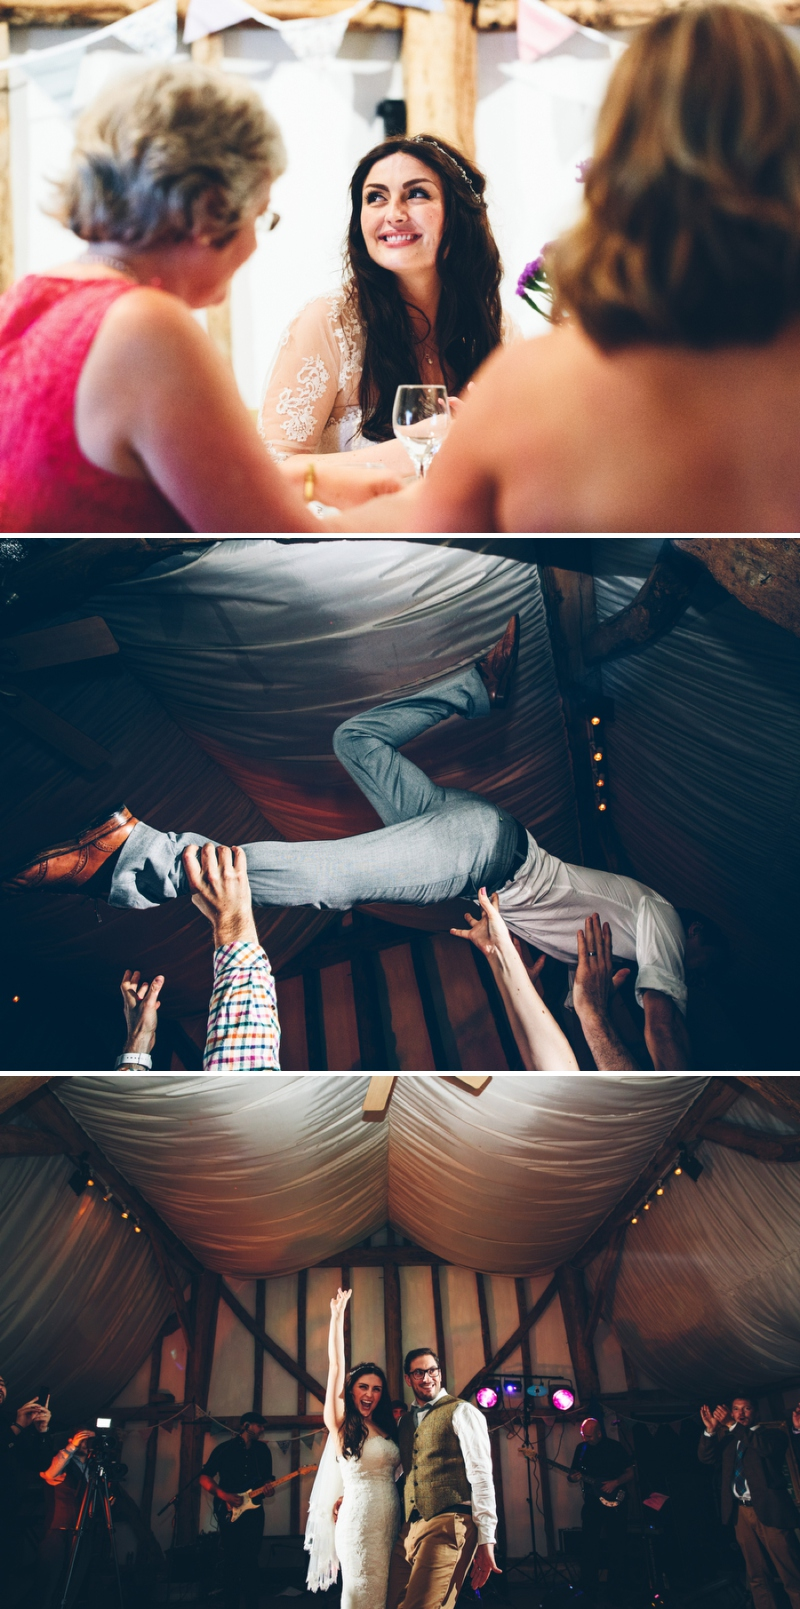 Festival fete style wedding at South farm with Urda gown by Pronovias by Mister Phill Photography_0555